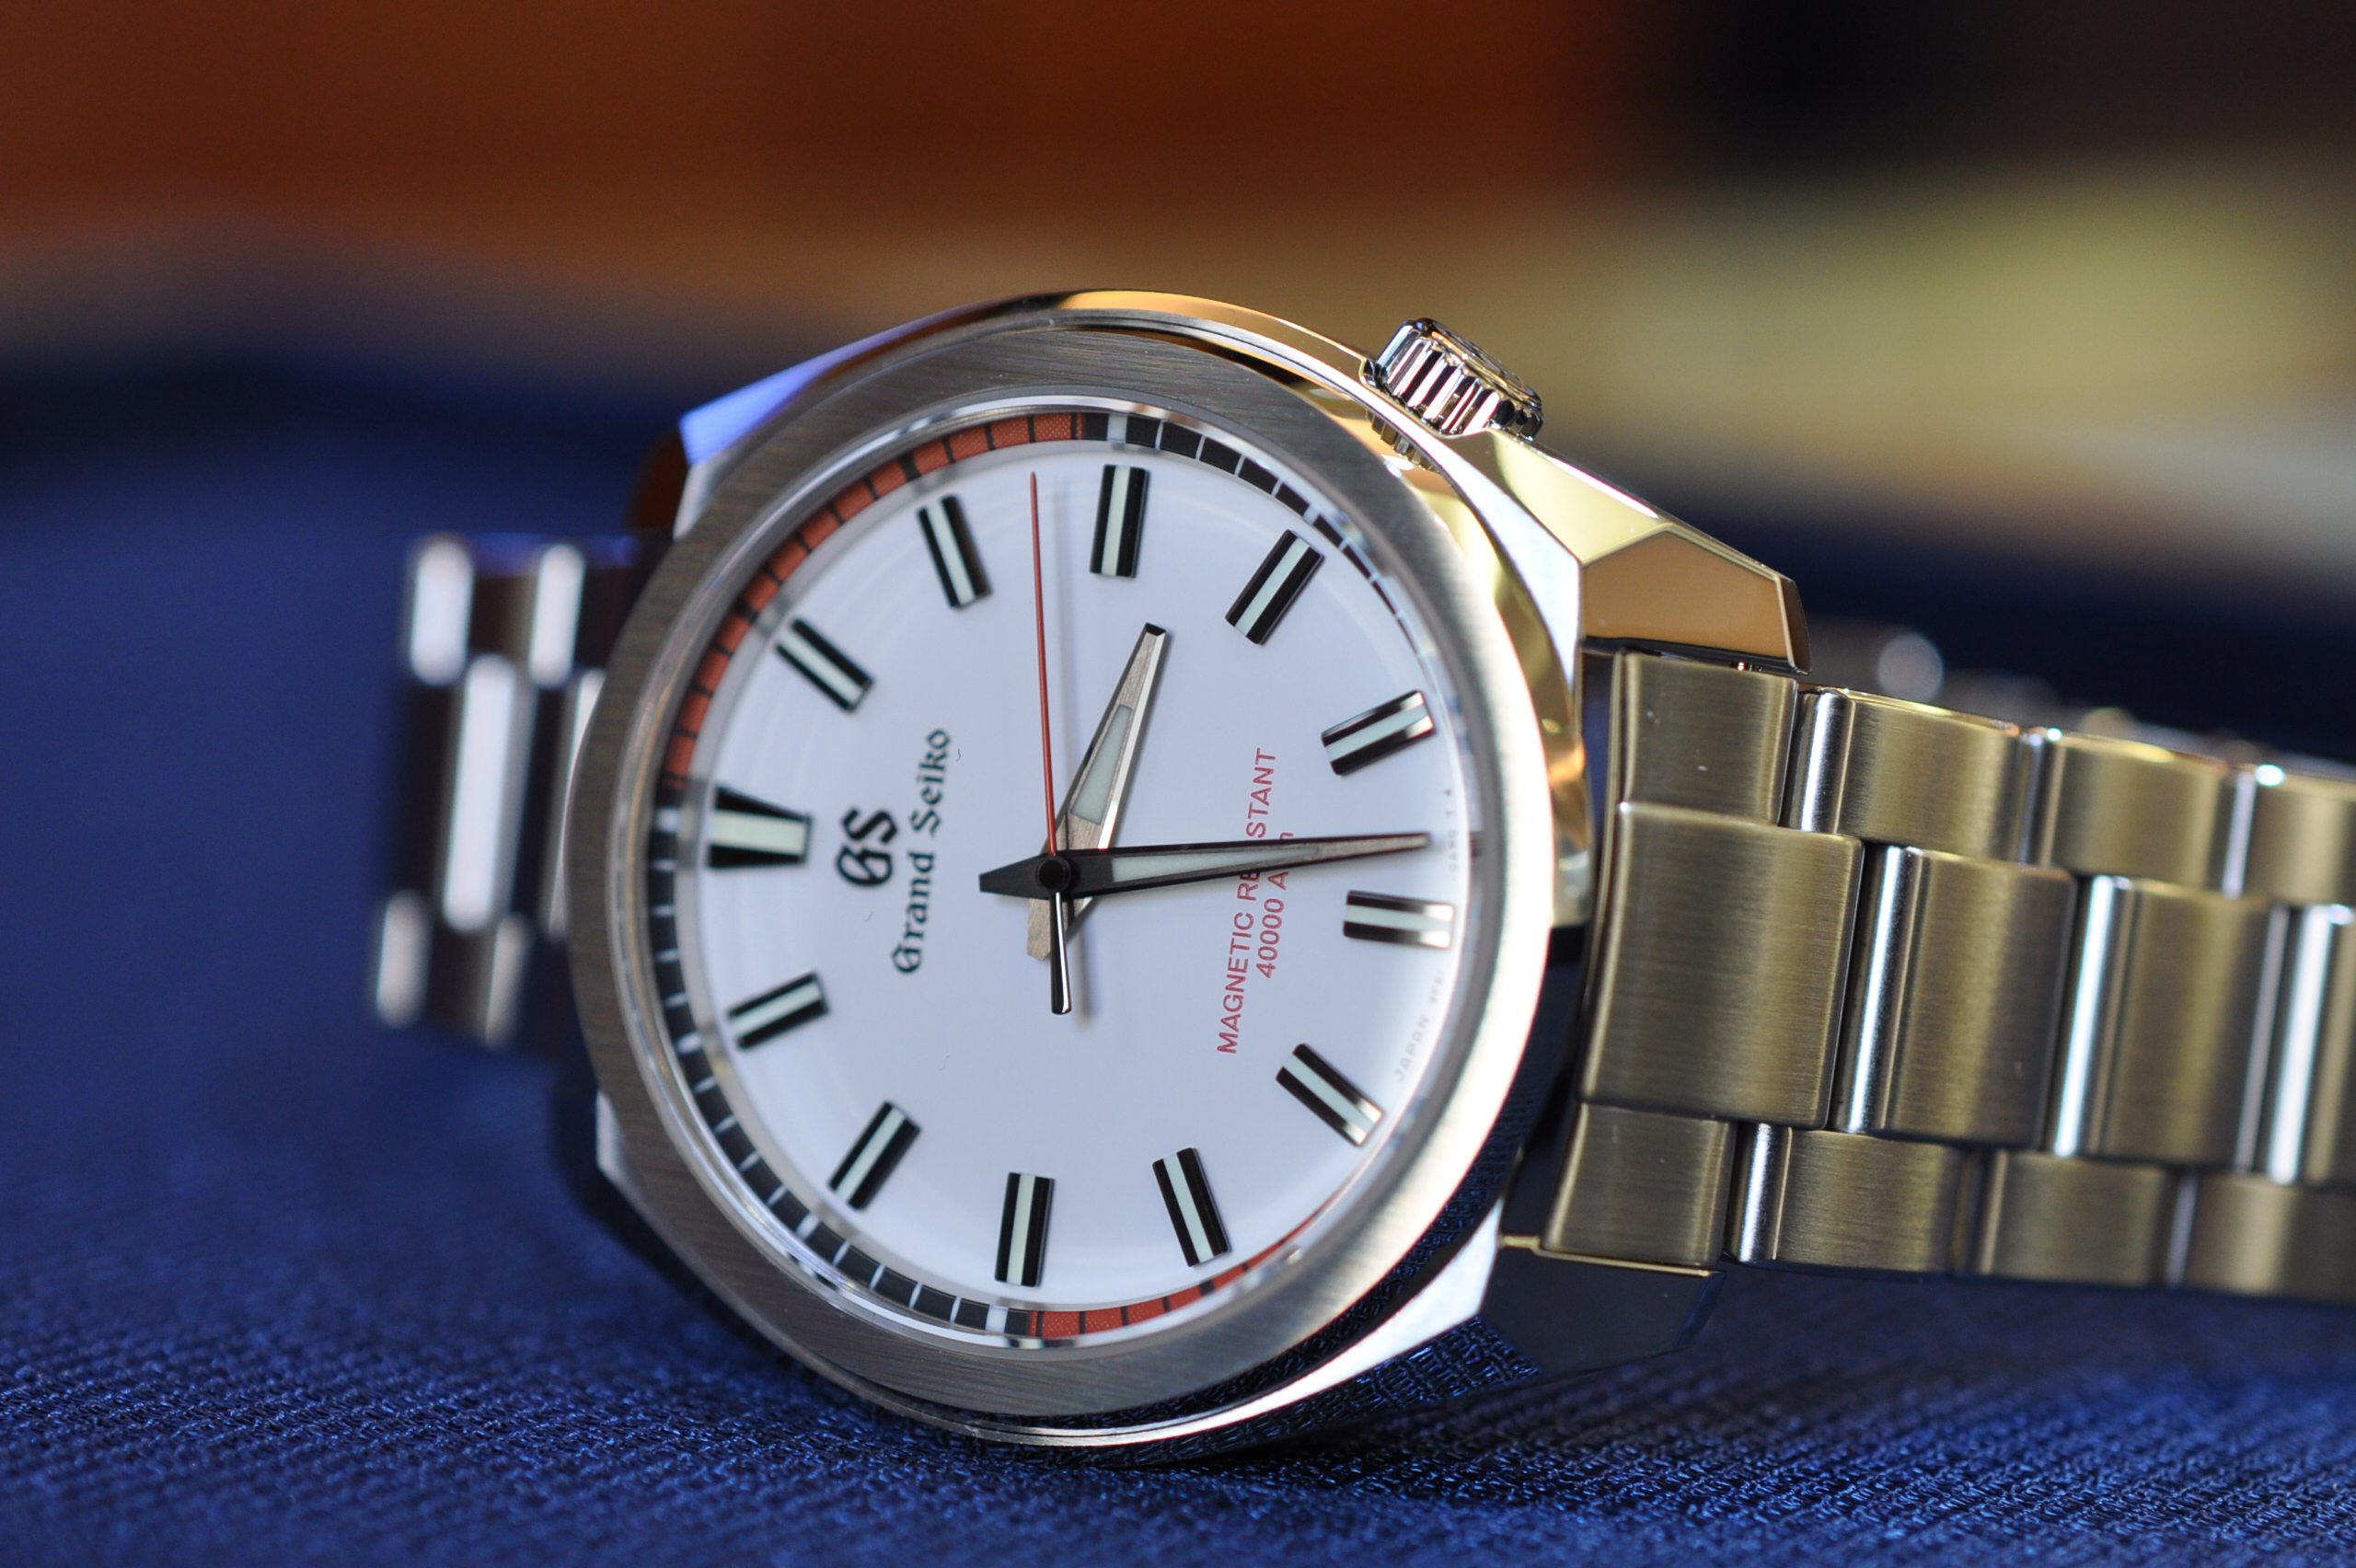 INTRODUCING: The Grand Seiko SBGX341 is a formidable everyday option